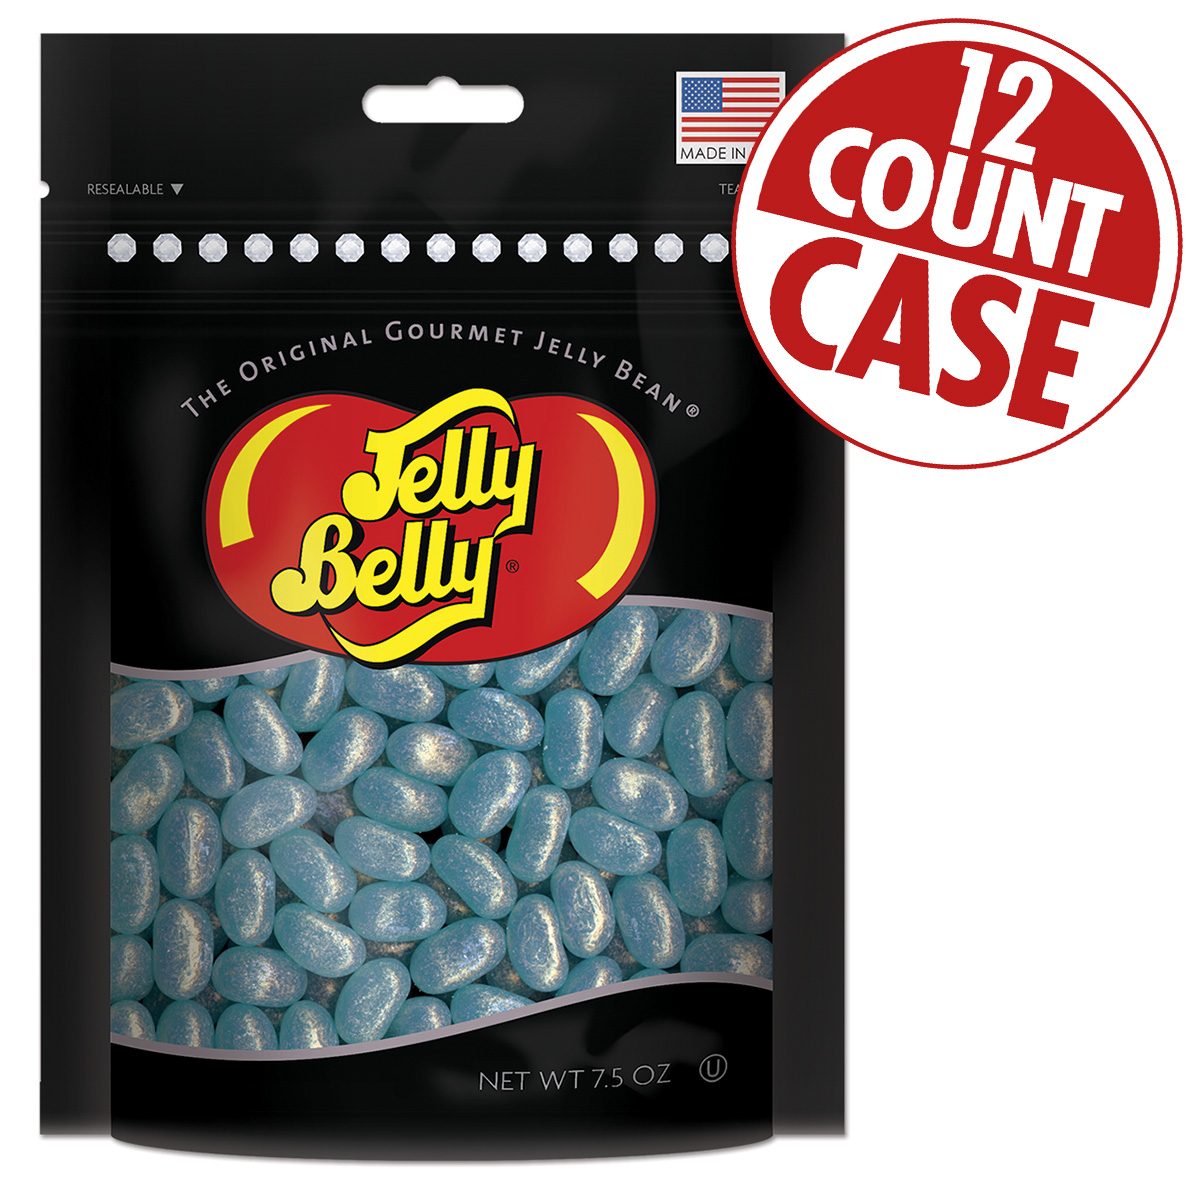 Jewel Berry Blue Jelly Beans Party Bag - 7.5 oz Bag - 12 Count Case